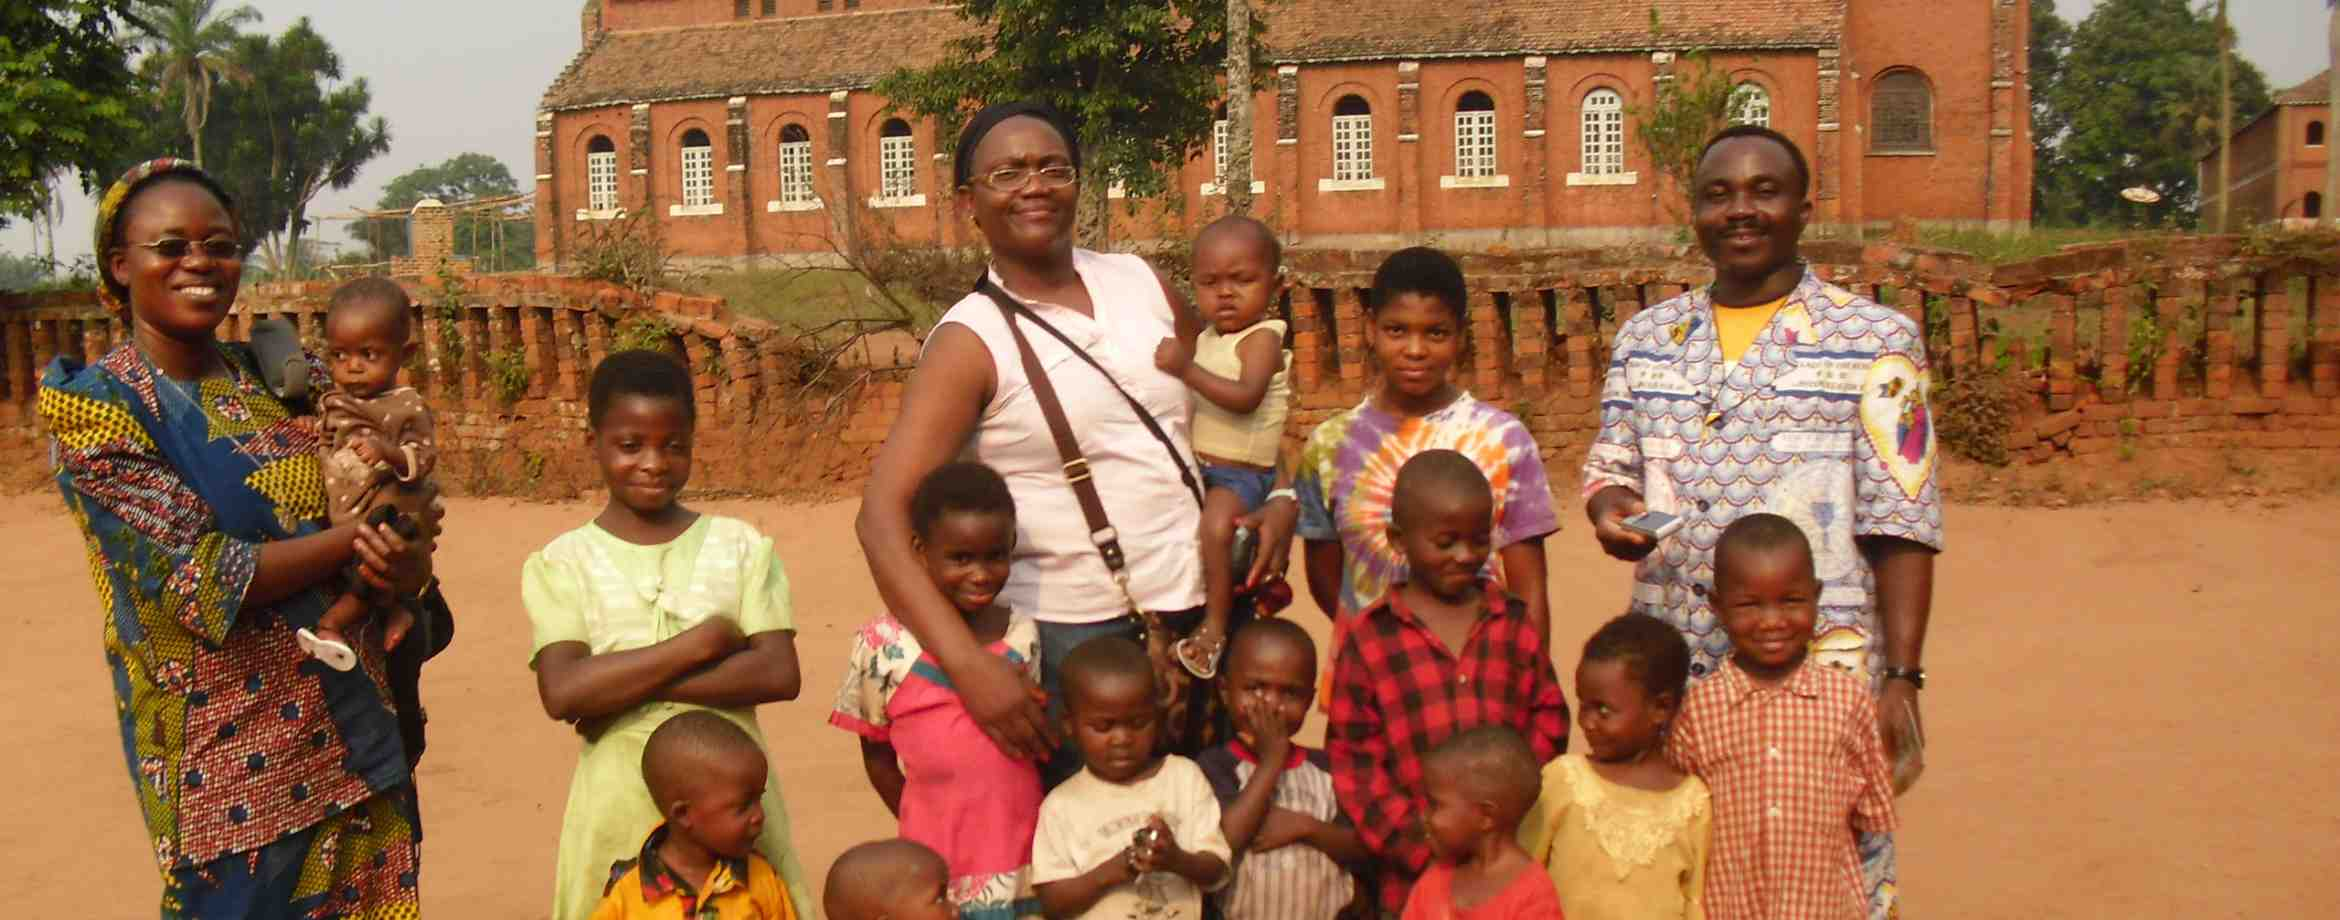 help orphans in the DR Congo